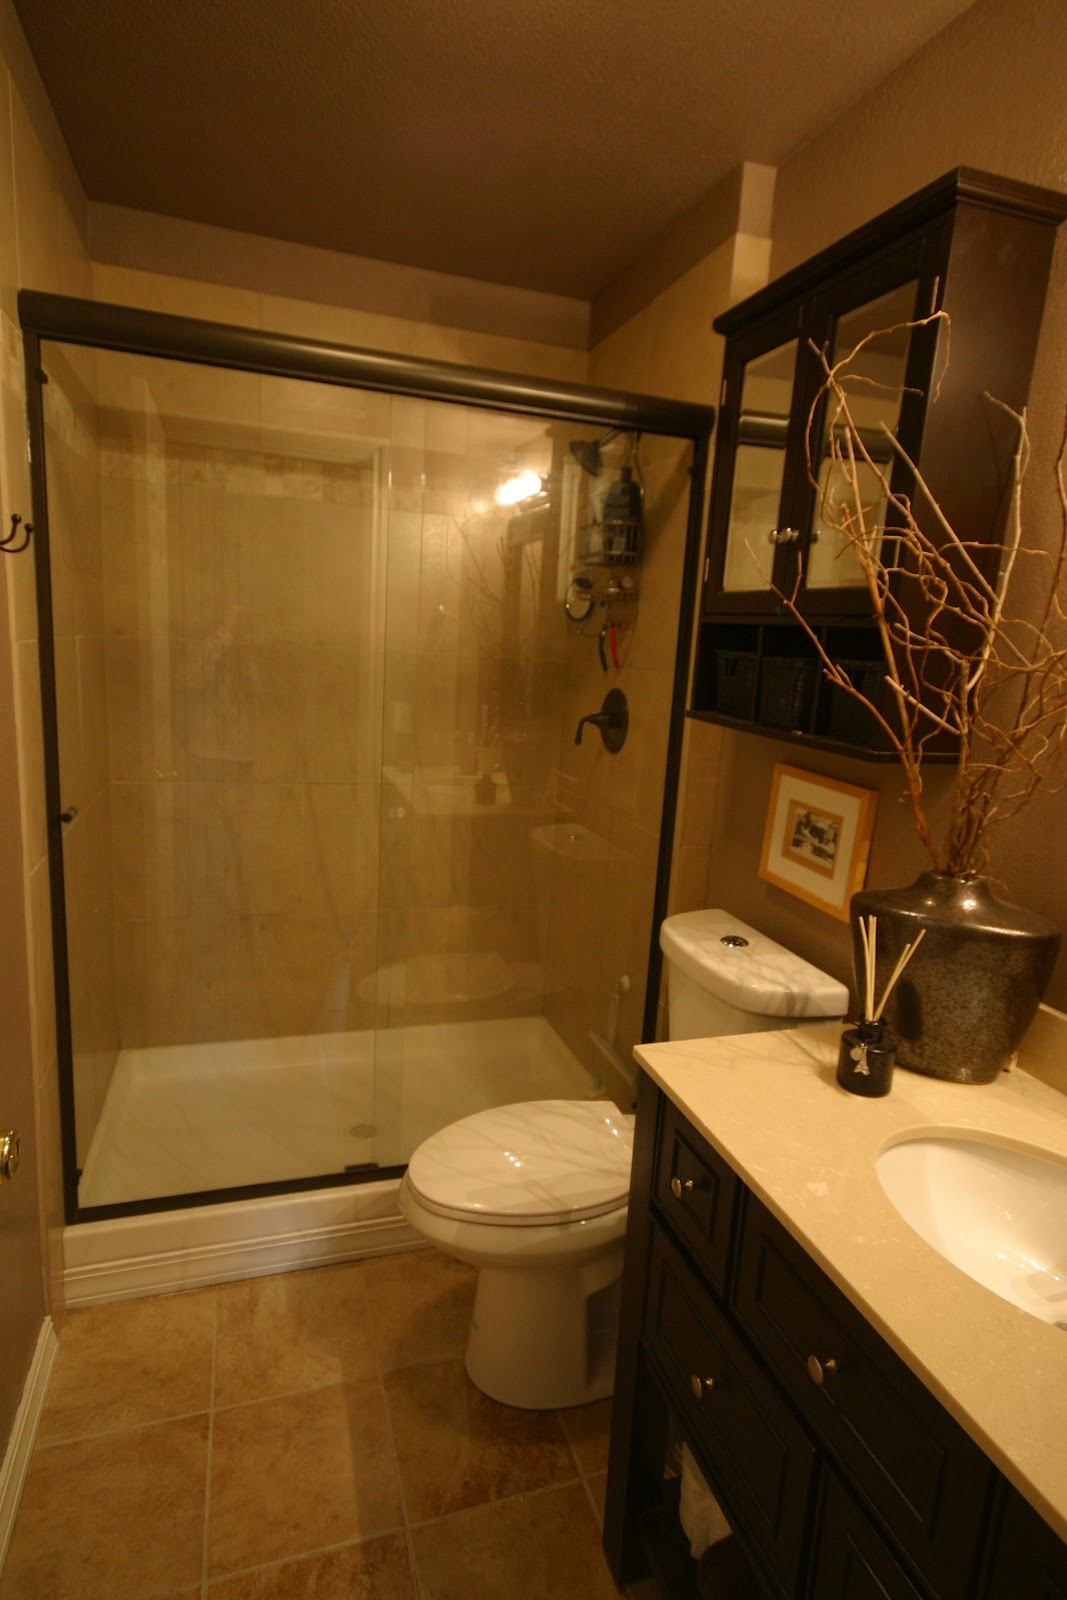 Modern Small Bath Remodel With Lighting And Walk In Shower With Glass Wall  And Tile Wall